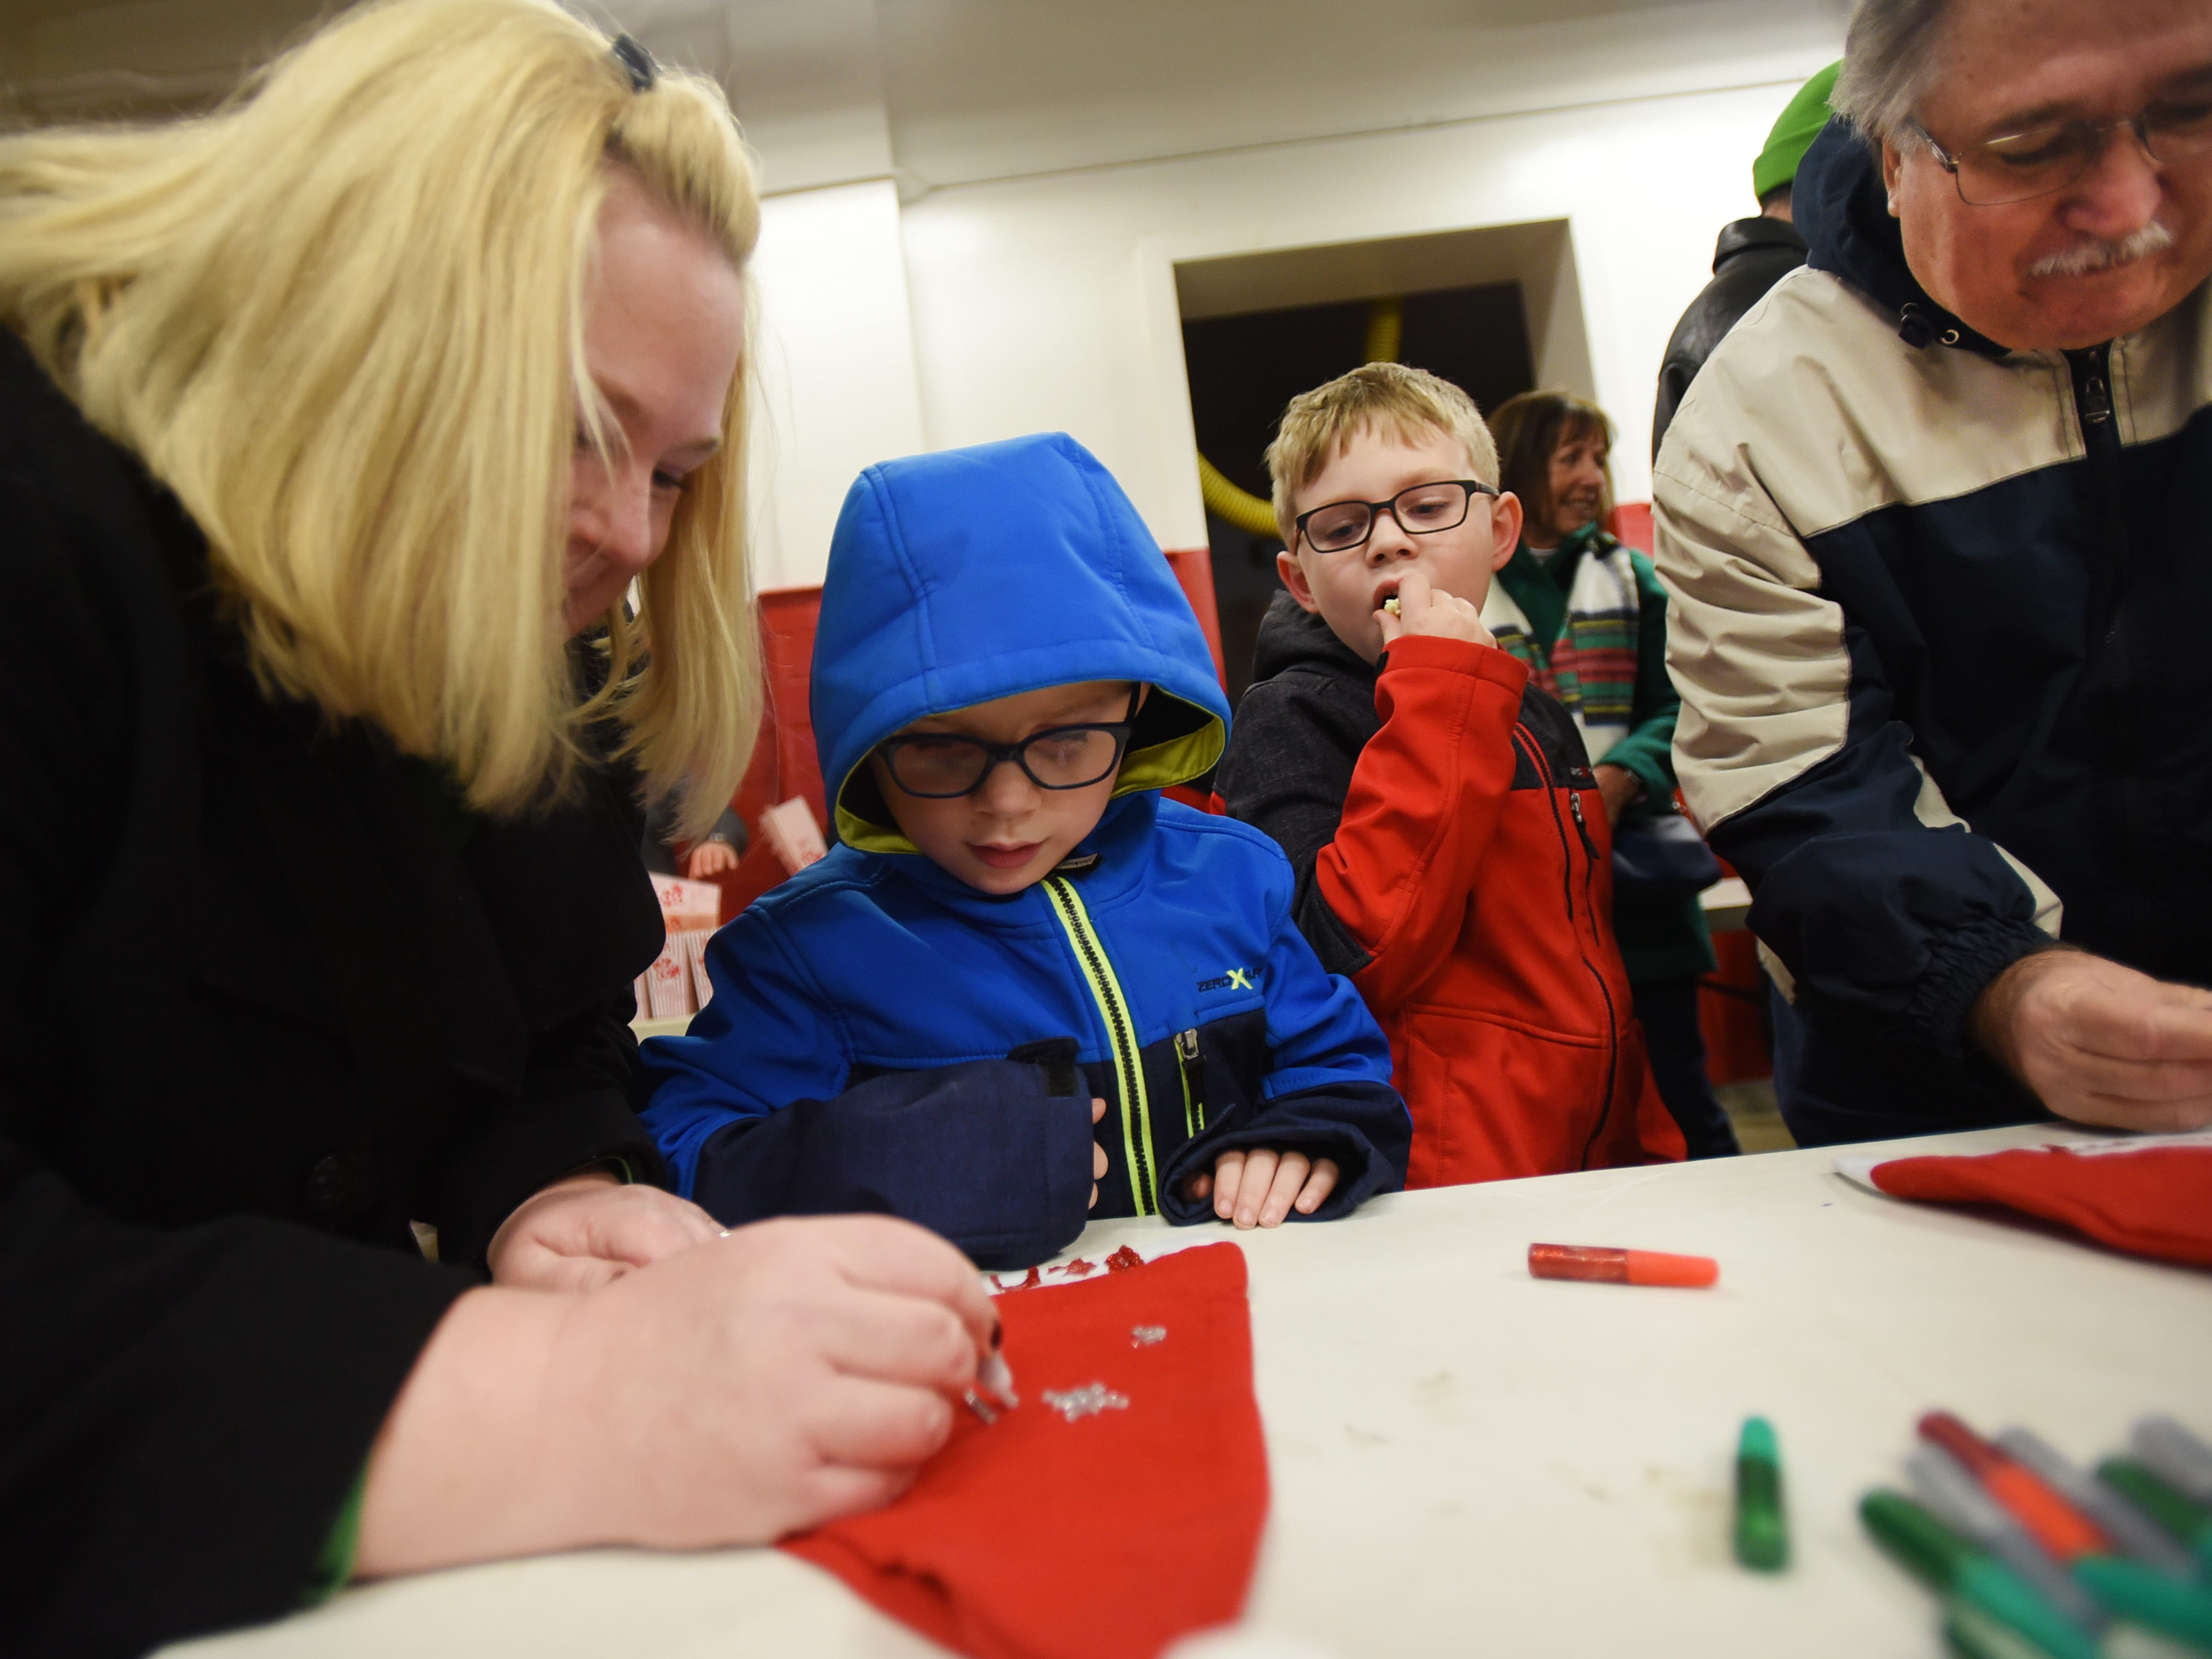 Seven year old twins Ben and Anthony Palamara work on decorating Christmas caps helped by their mother Cathy and their Grandfather Ken Geiselmann (R) prior to the Christmas Tree Lighting ceremony at Cedar Grove Town Hall on 12/03/18.